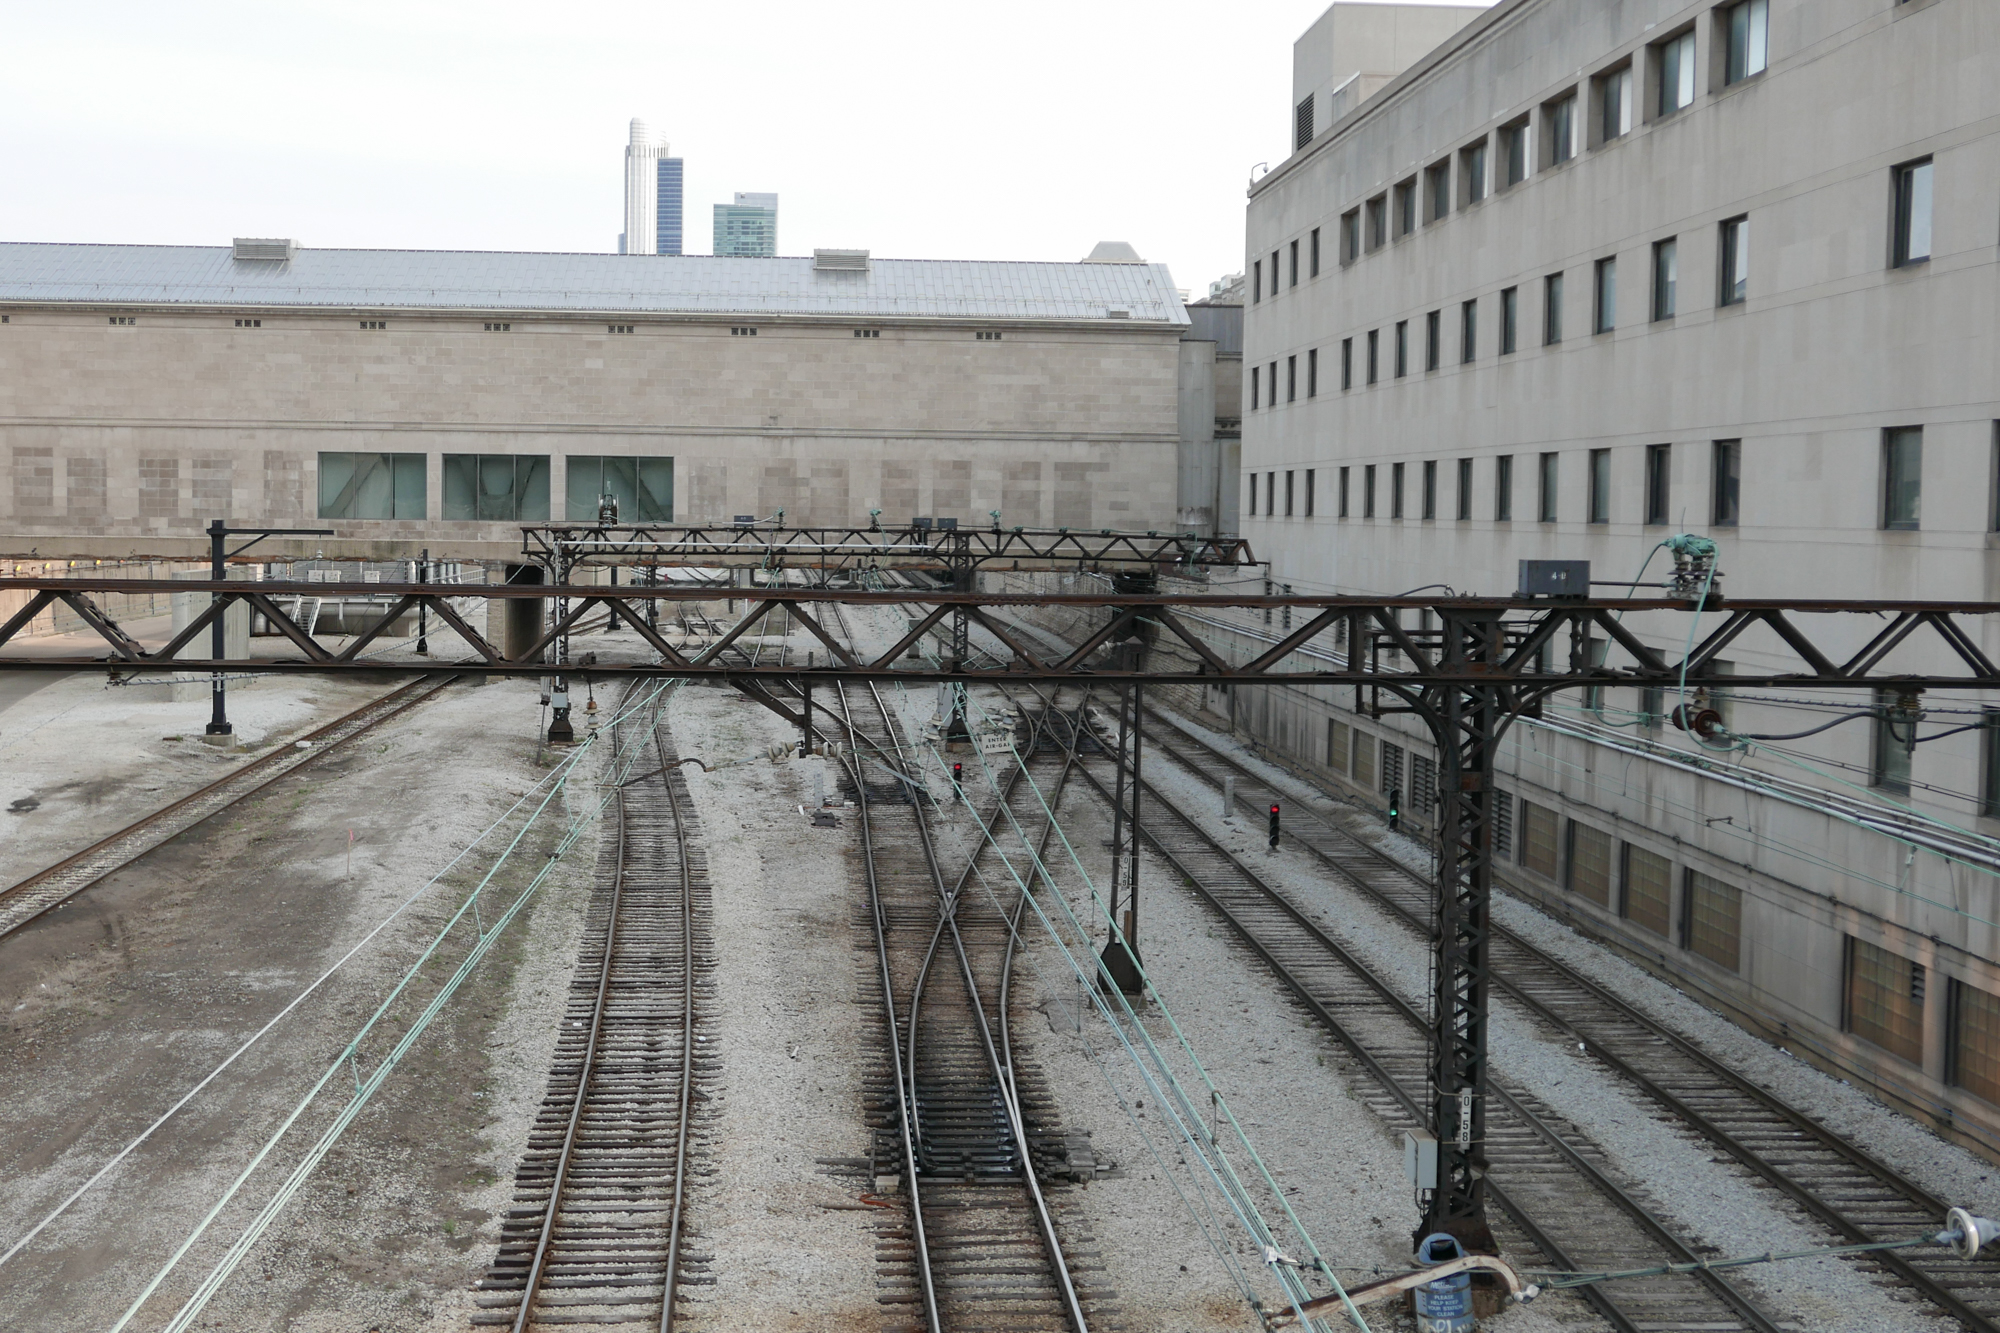 Commuter rails and buildings